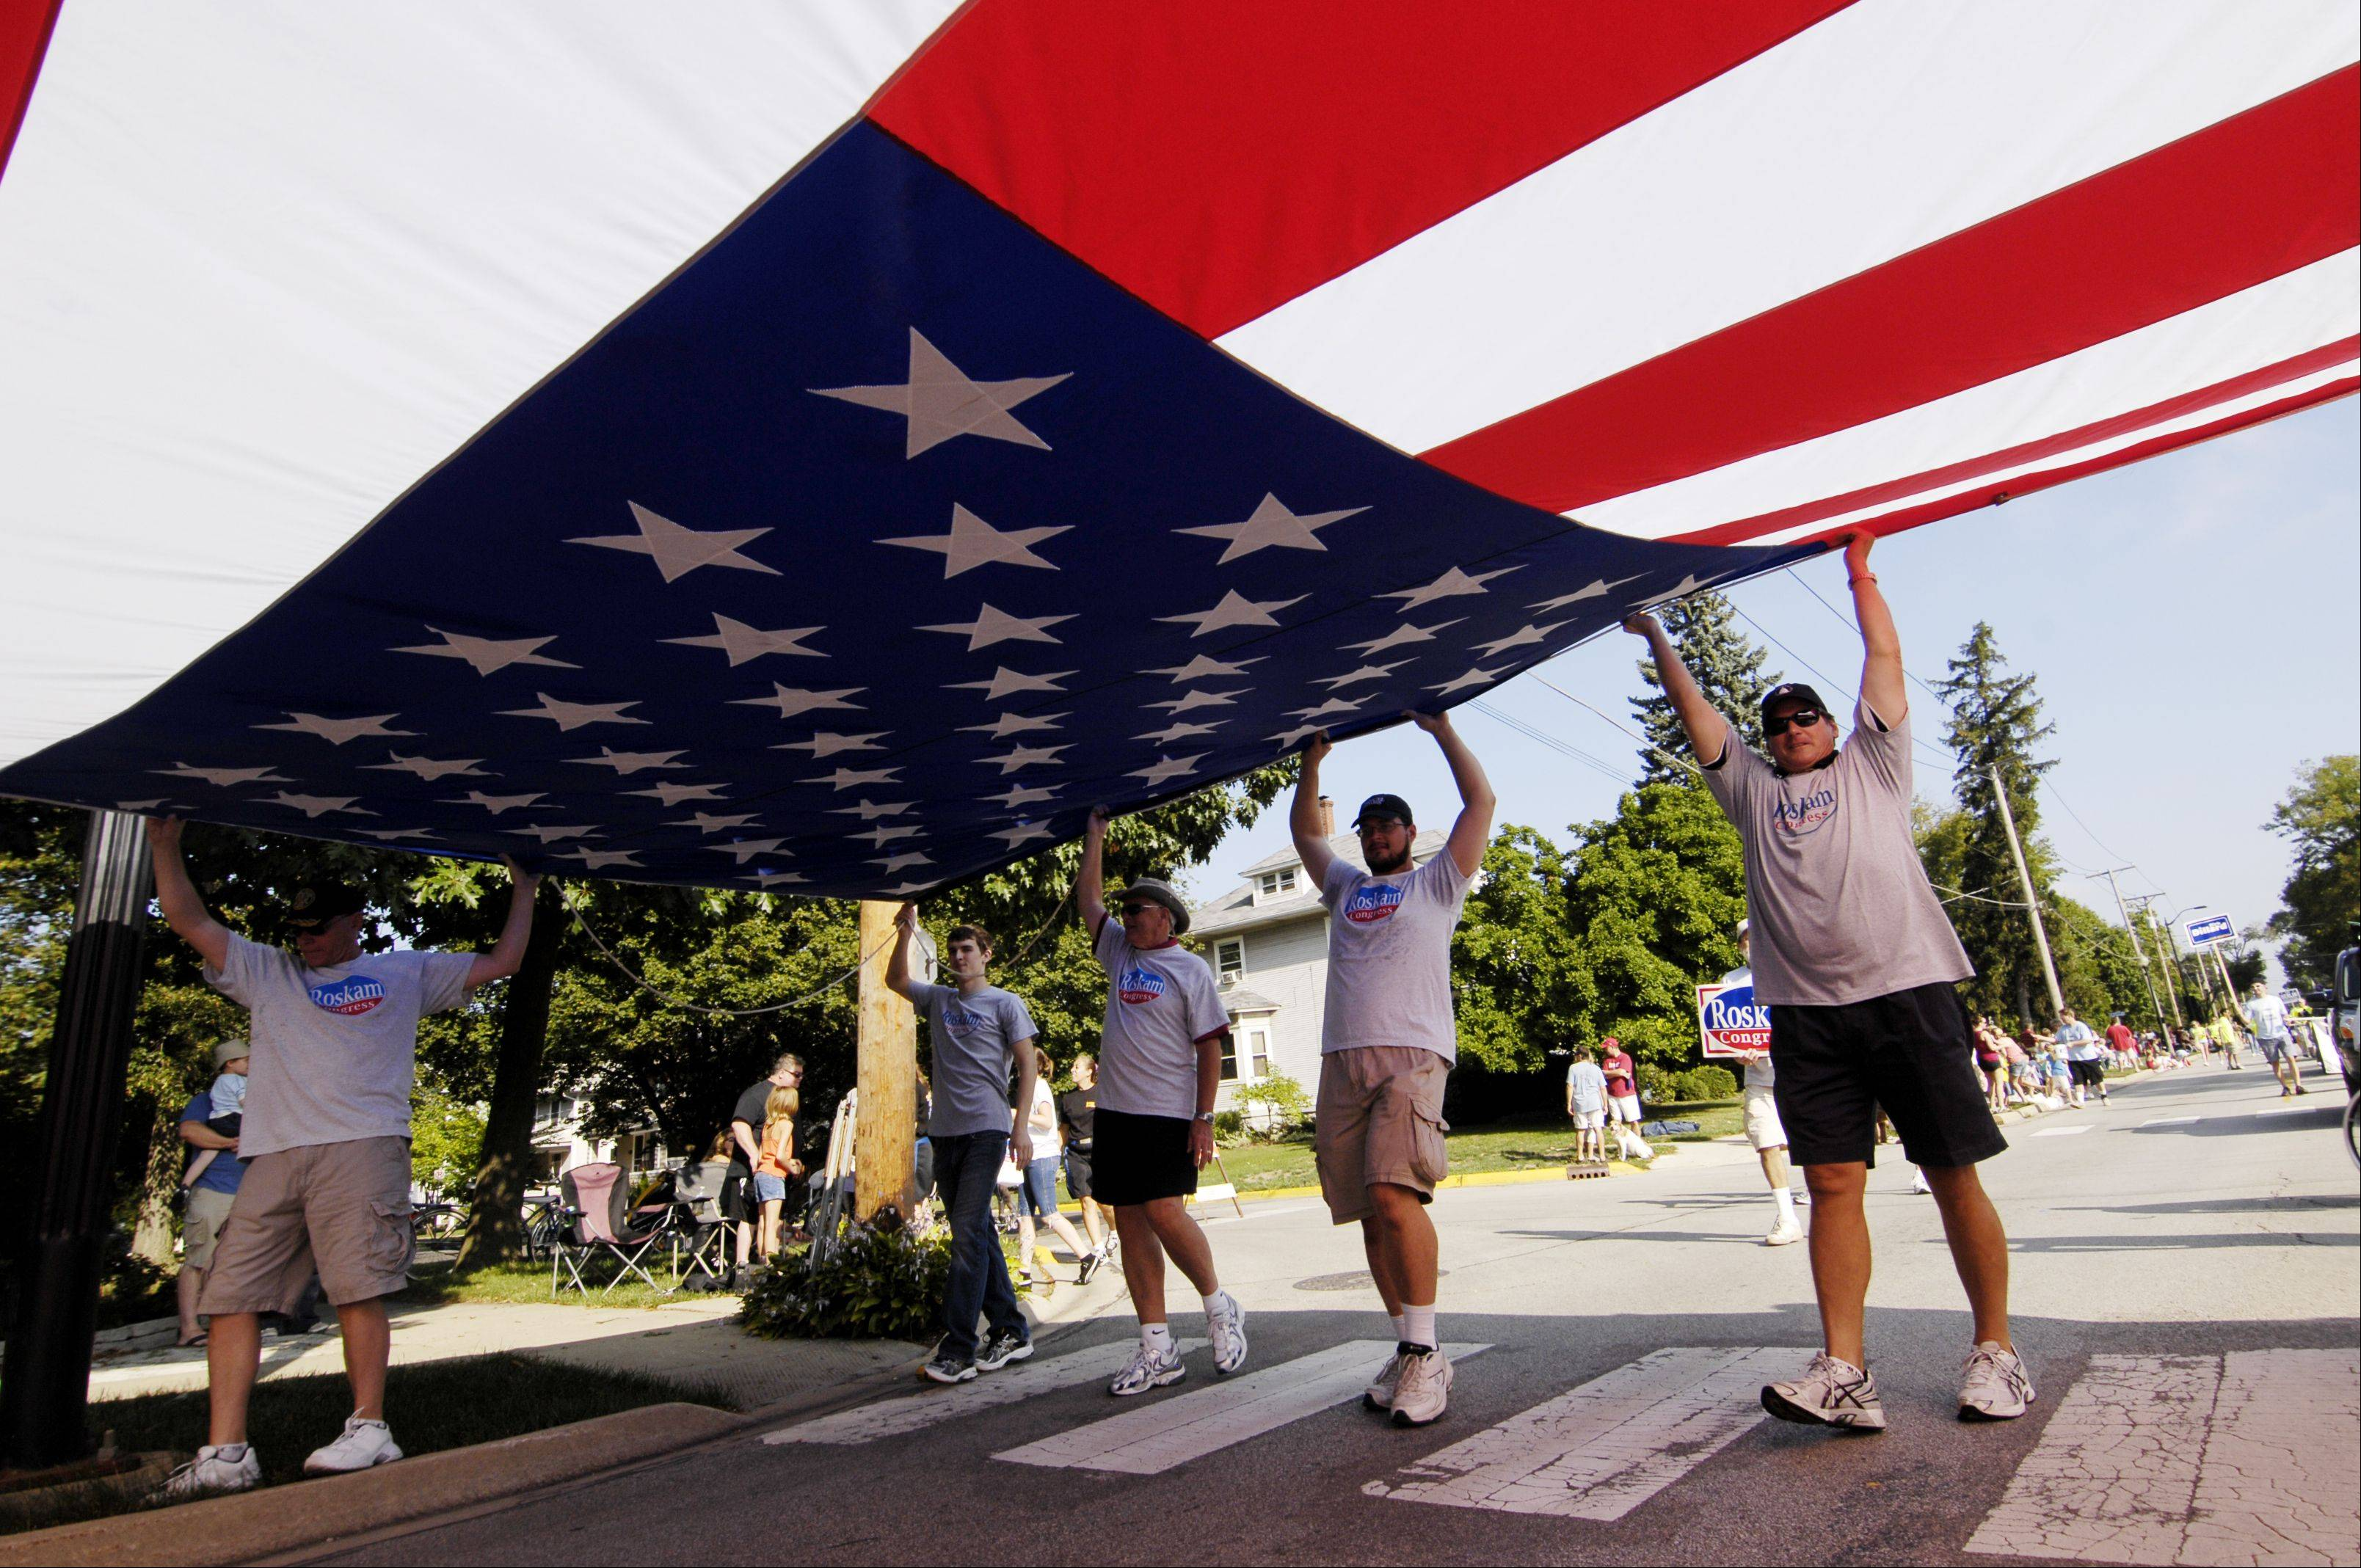 Supporters of Congressman Peter Roskam carry a huge American Flag as they march in the Wheaton Labor Day Parade, Monday. The city of Wheaton holds a Labor Day Parade to make up for the 4th of July parade that was canceled because of storm damage.